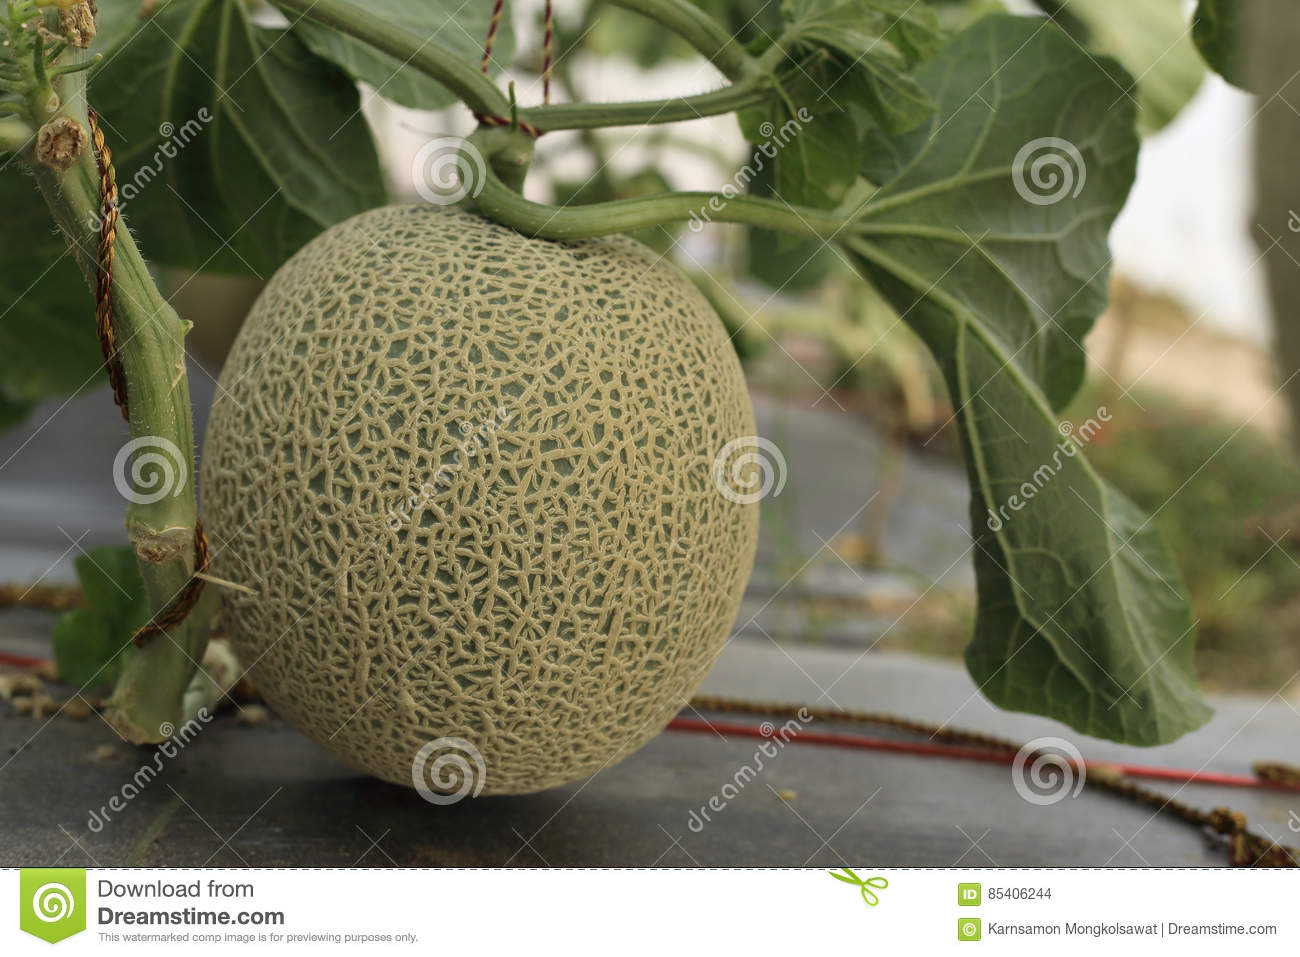 Melon Or Cantaloupe Fruit On Tree In Hydroponics Farm Stock Photo Image Of Fruit Foliage 85406244 Find 20 melon recipes from martha stewart, highlighting honeydew, cantaloupe, and more. dreamstime com